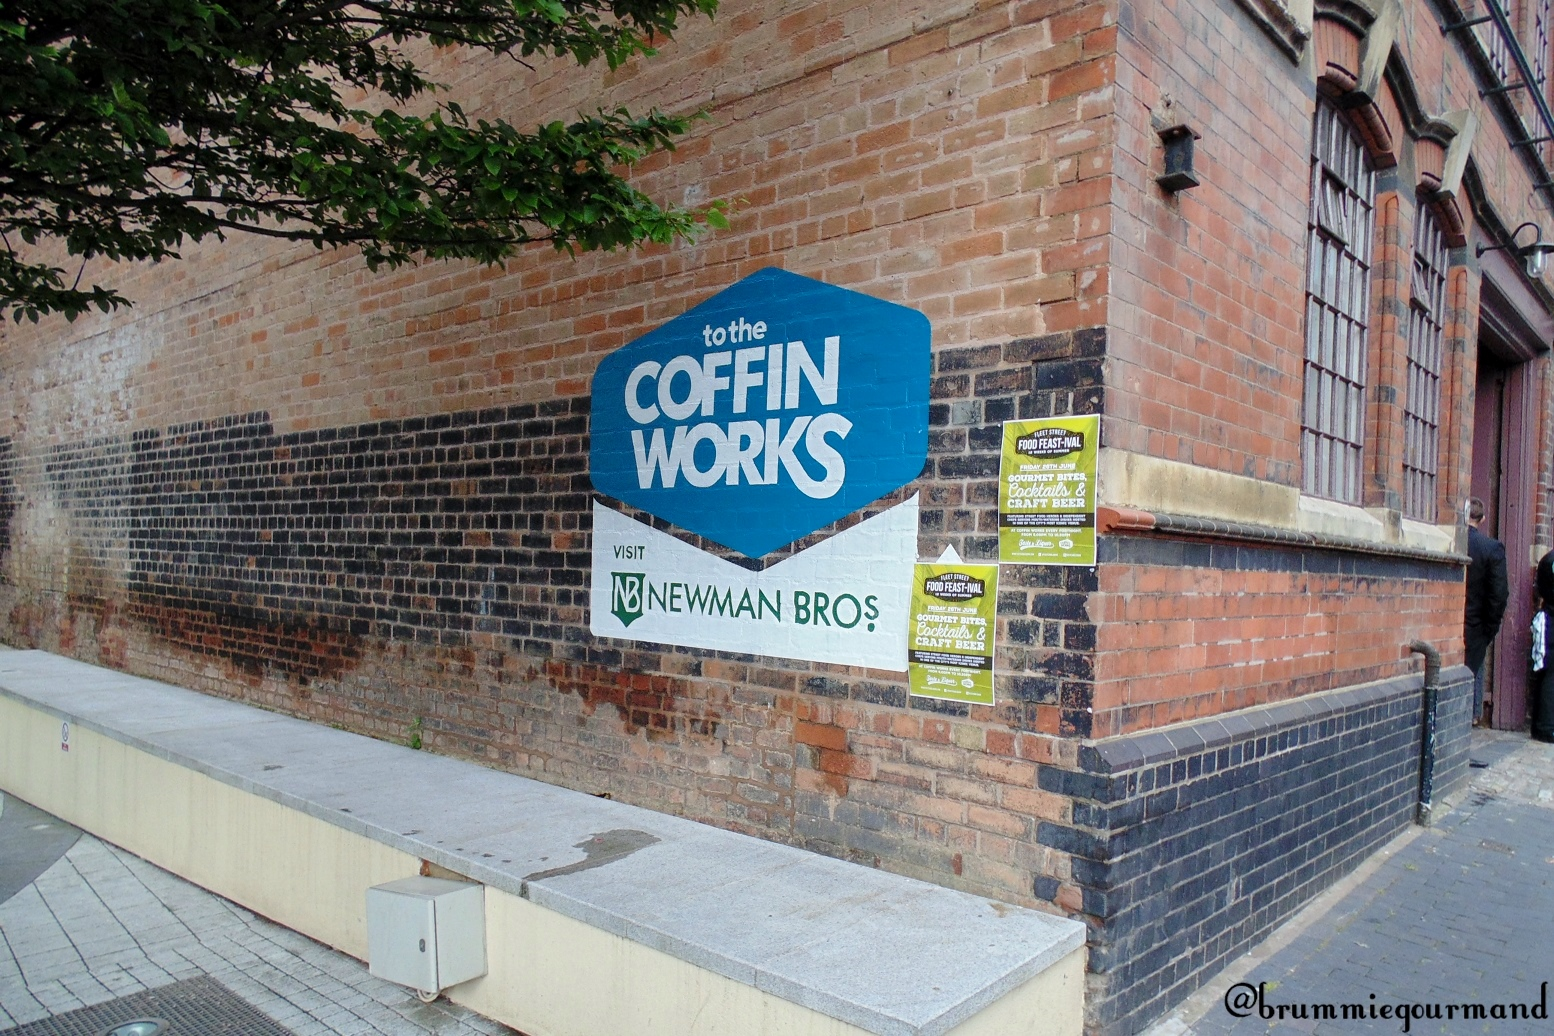 Chowing down at Coffin Works – Taste & Liquor Fleet Street FeastIVAL